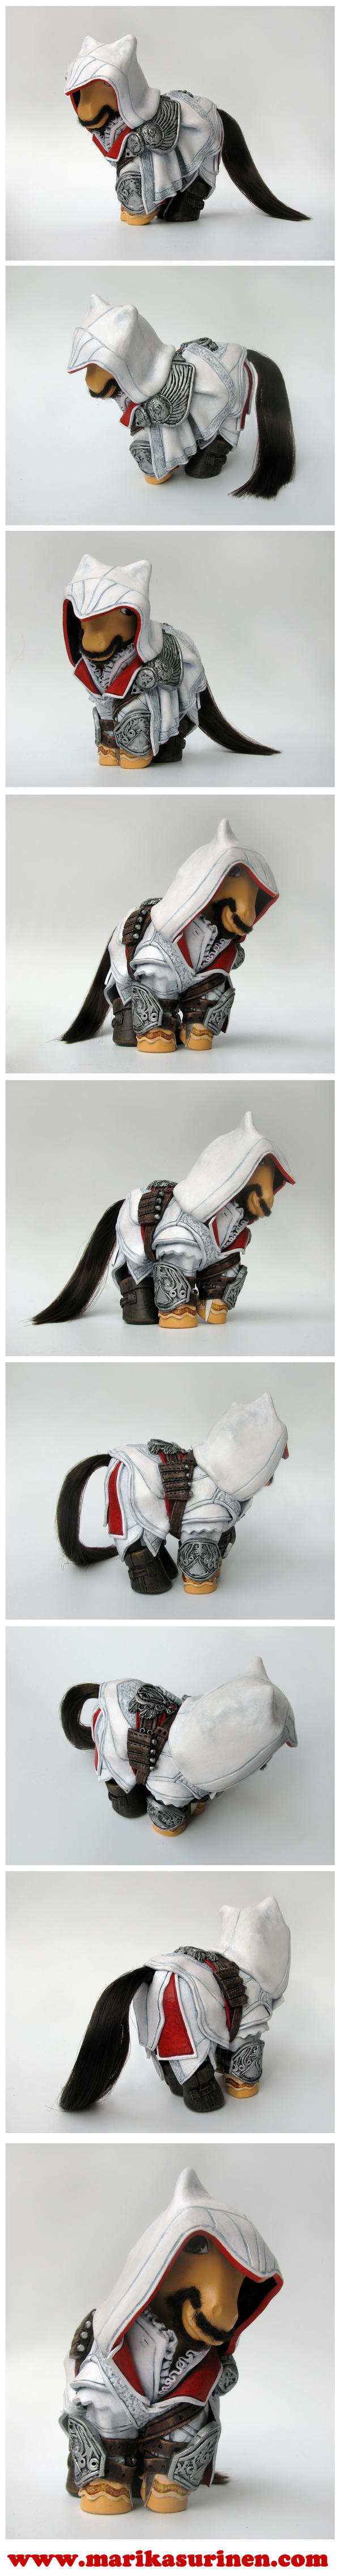 My Little Ezio Auditore by Spippo